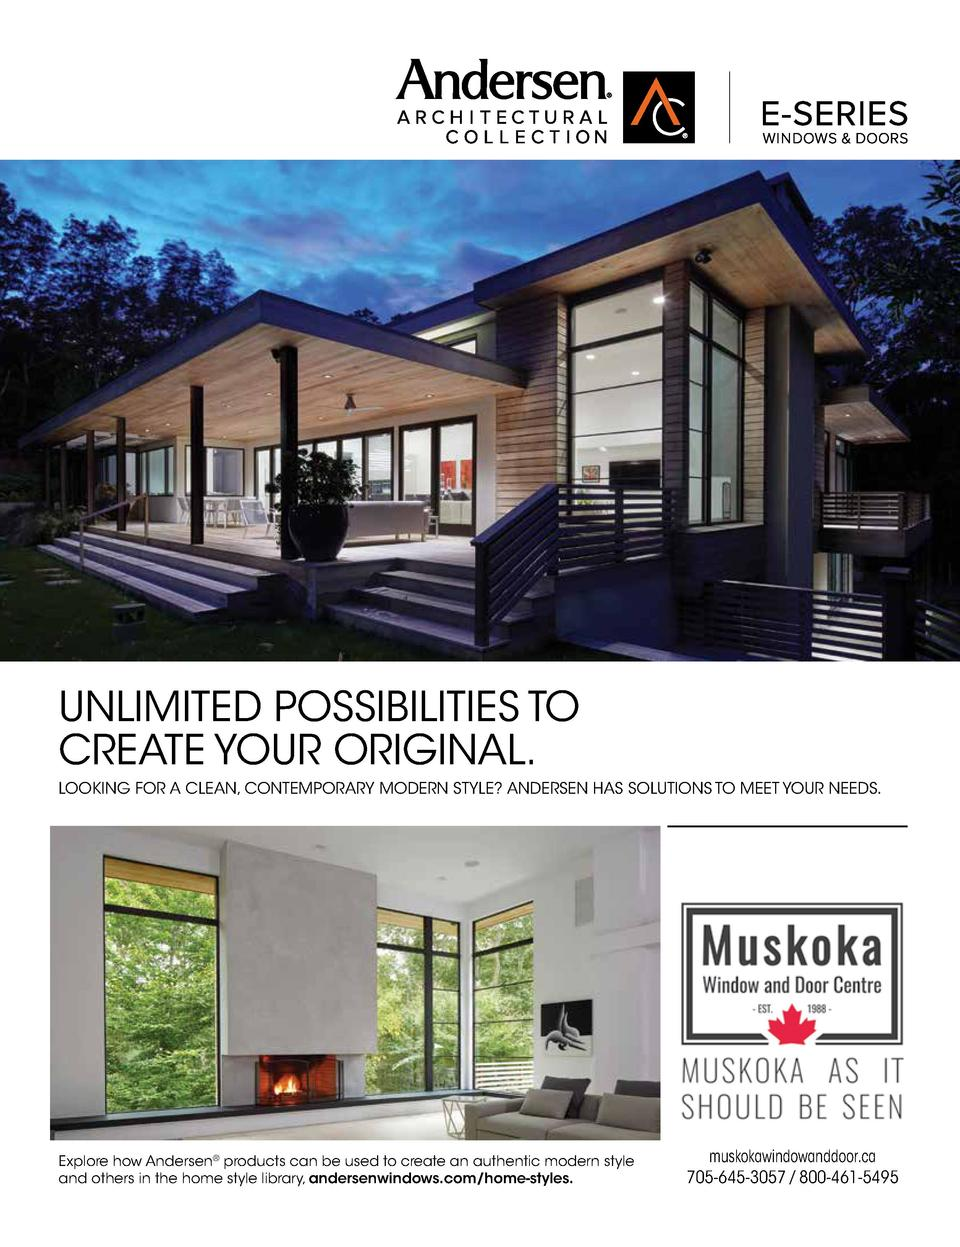 UNLIMITED POSSIBILITIES TO CREATE YOUR ORIGINAL. LOOKING FOR A CLEAN, CONTEMPORARY MODERN STYLE  ANDERSEN HAS SOLUTIONS TO...